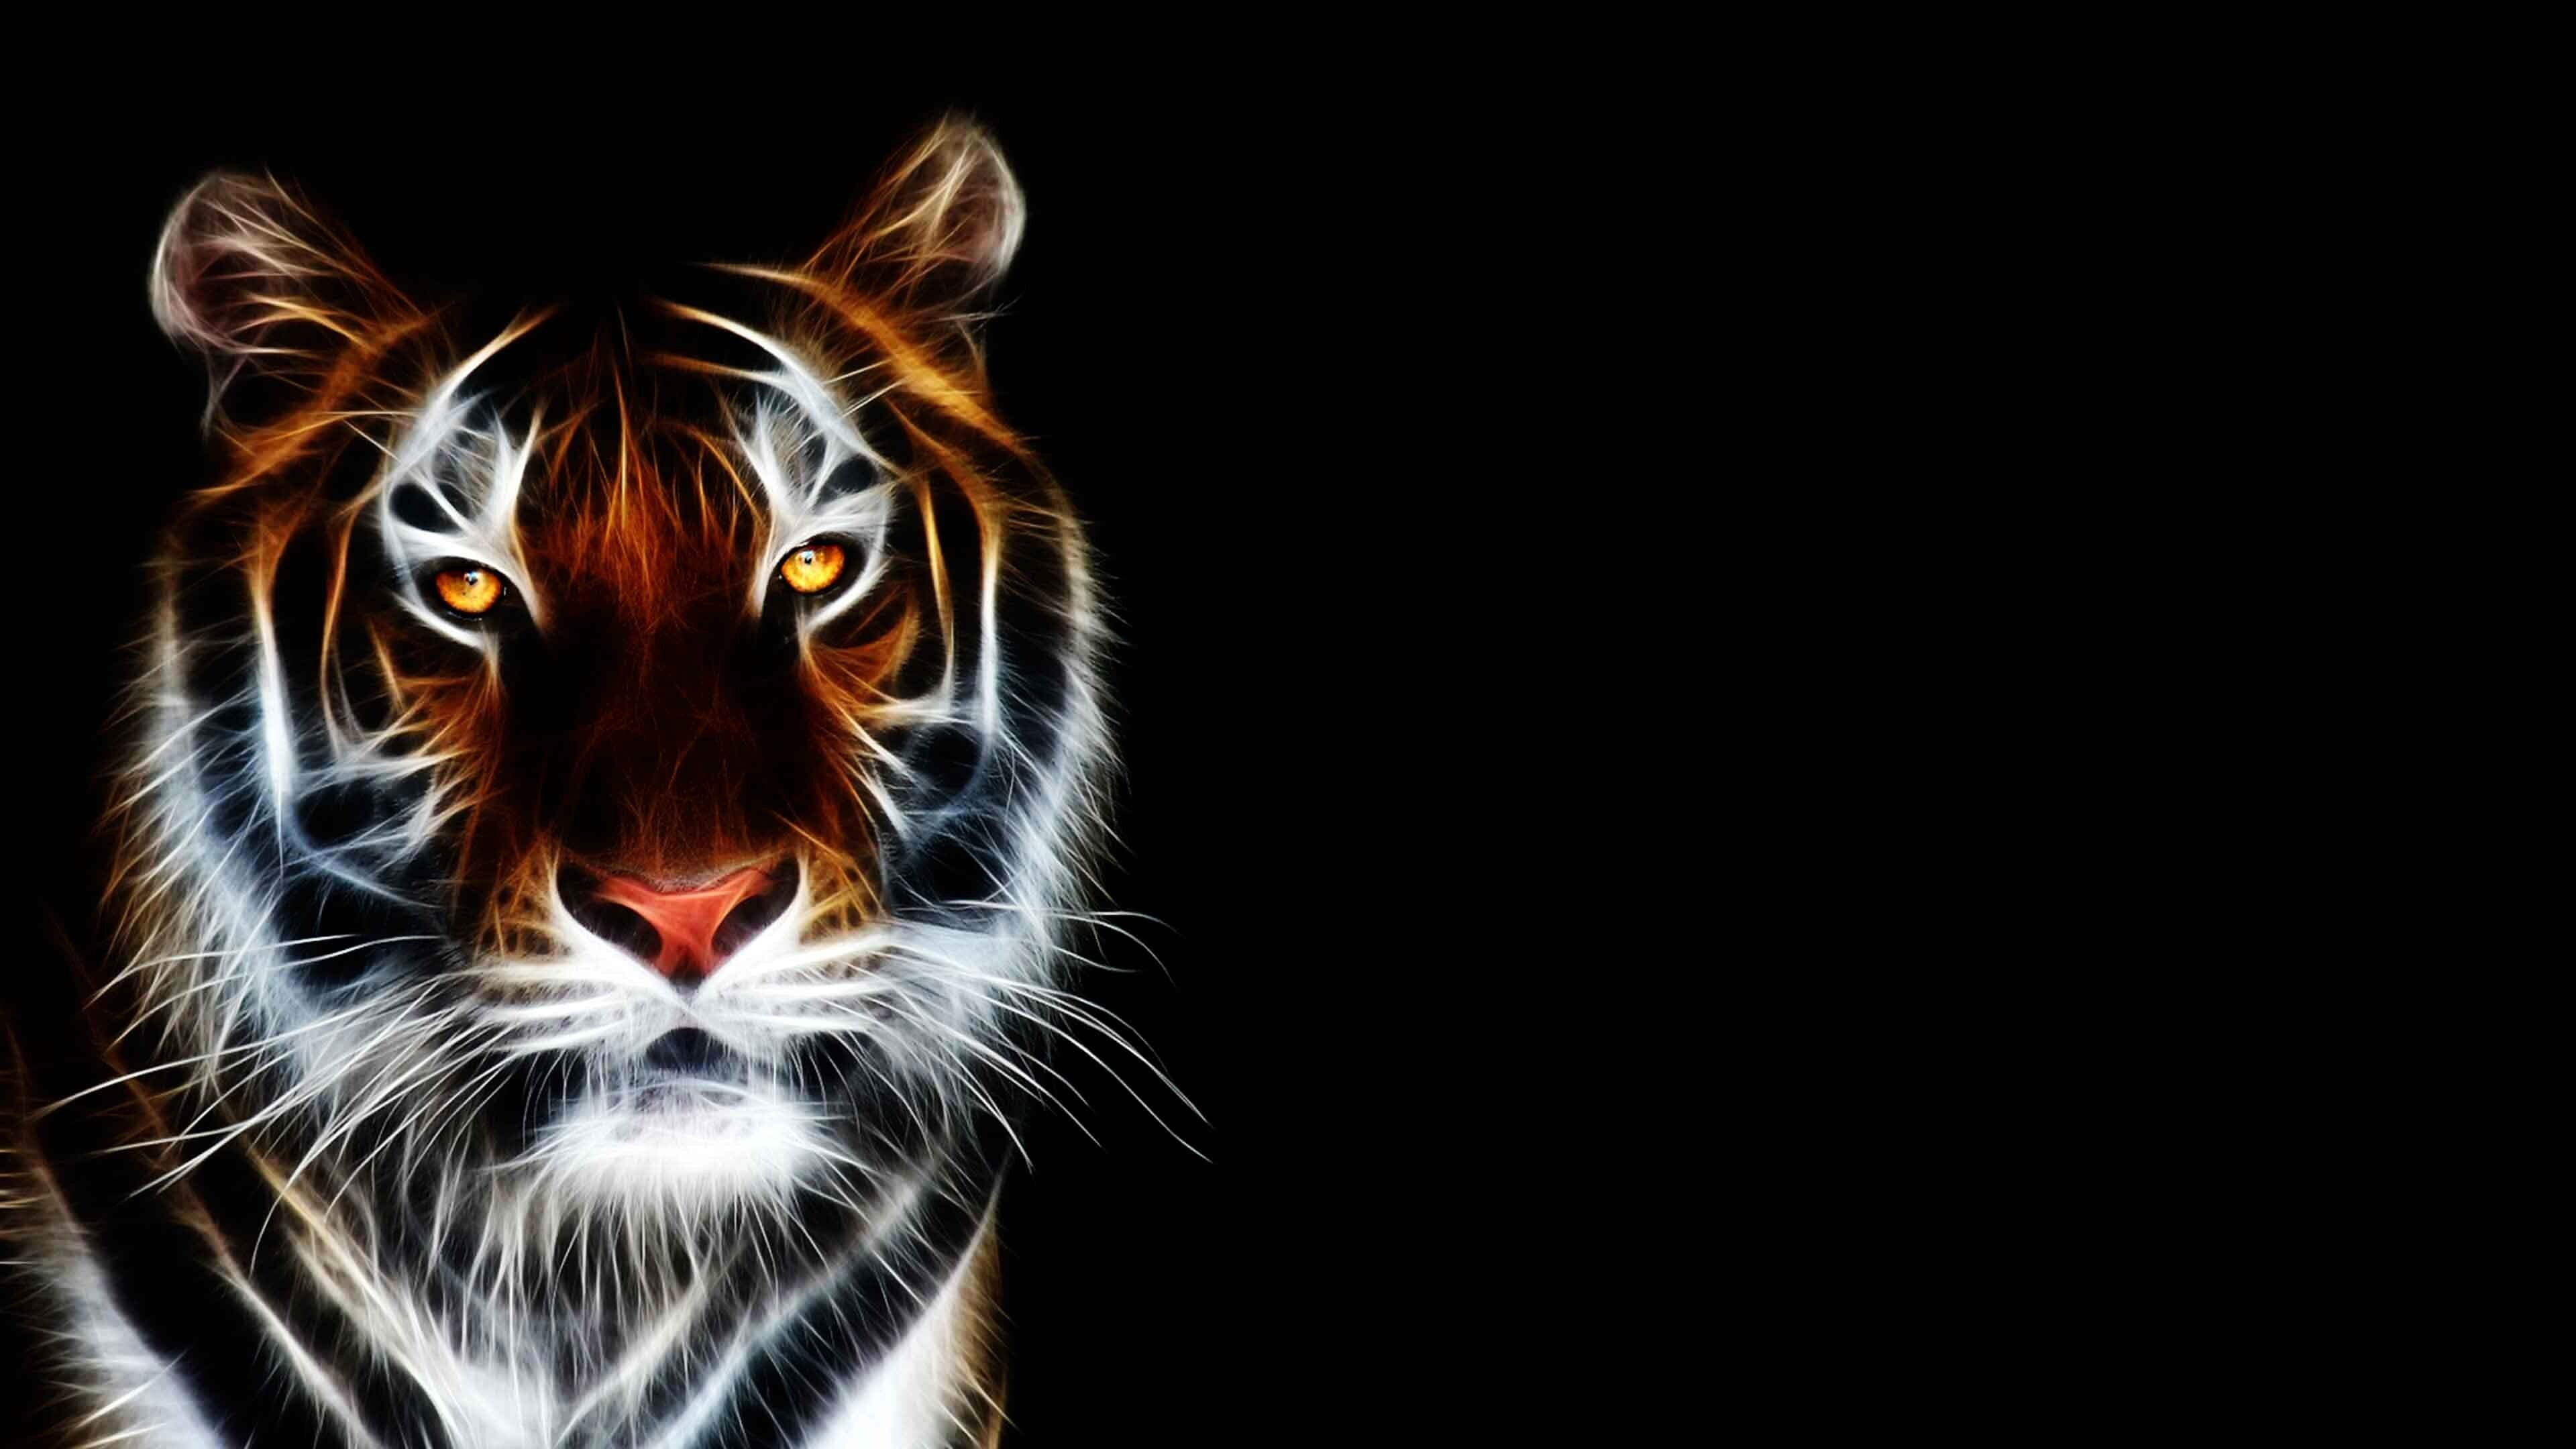 4K Pic of 3D Tiger | HD Wallpapers